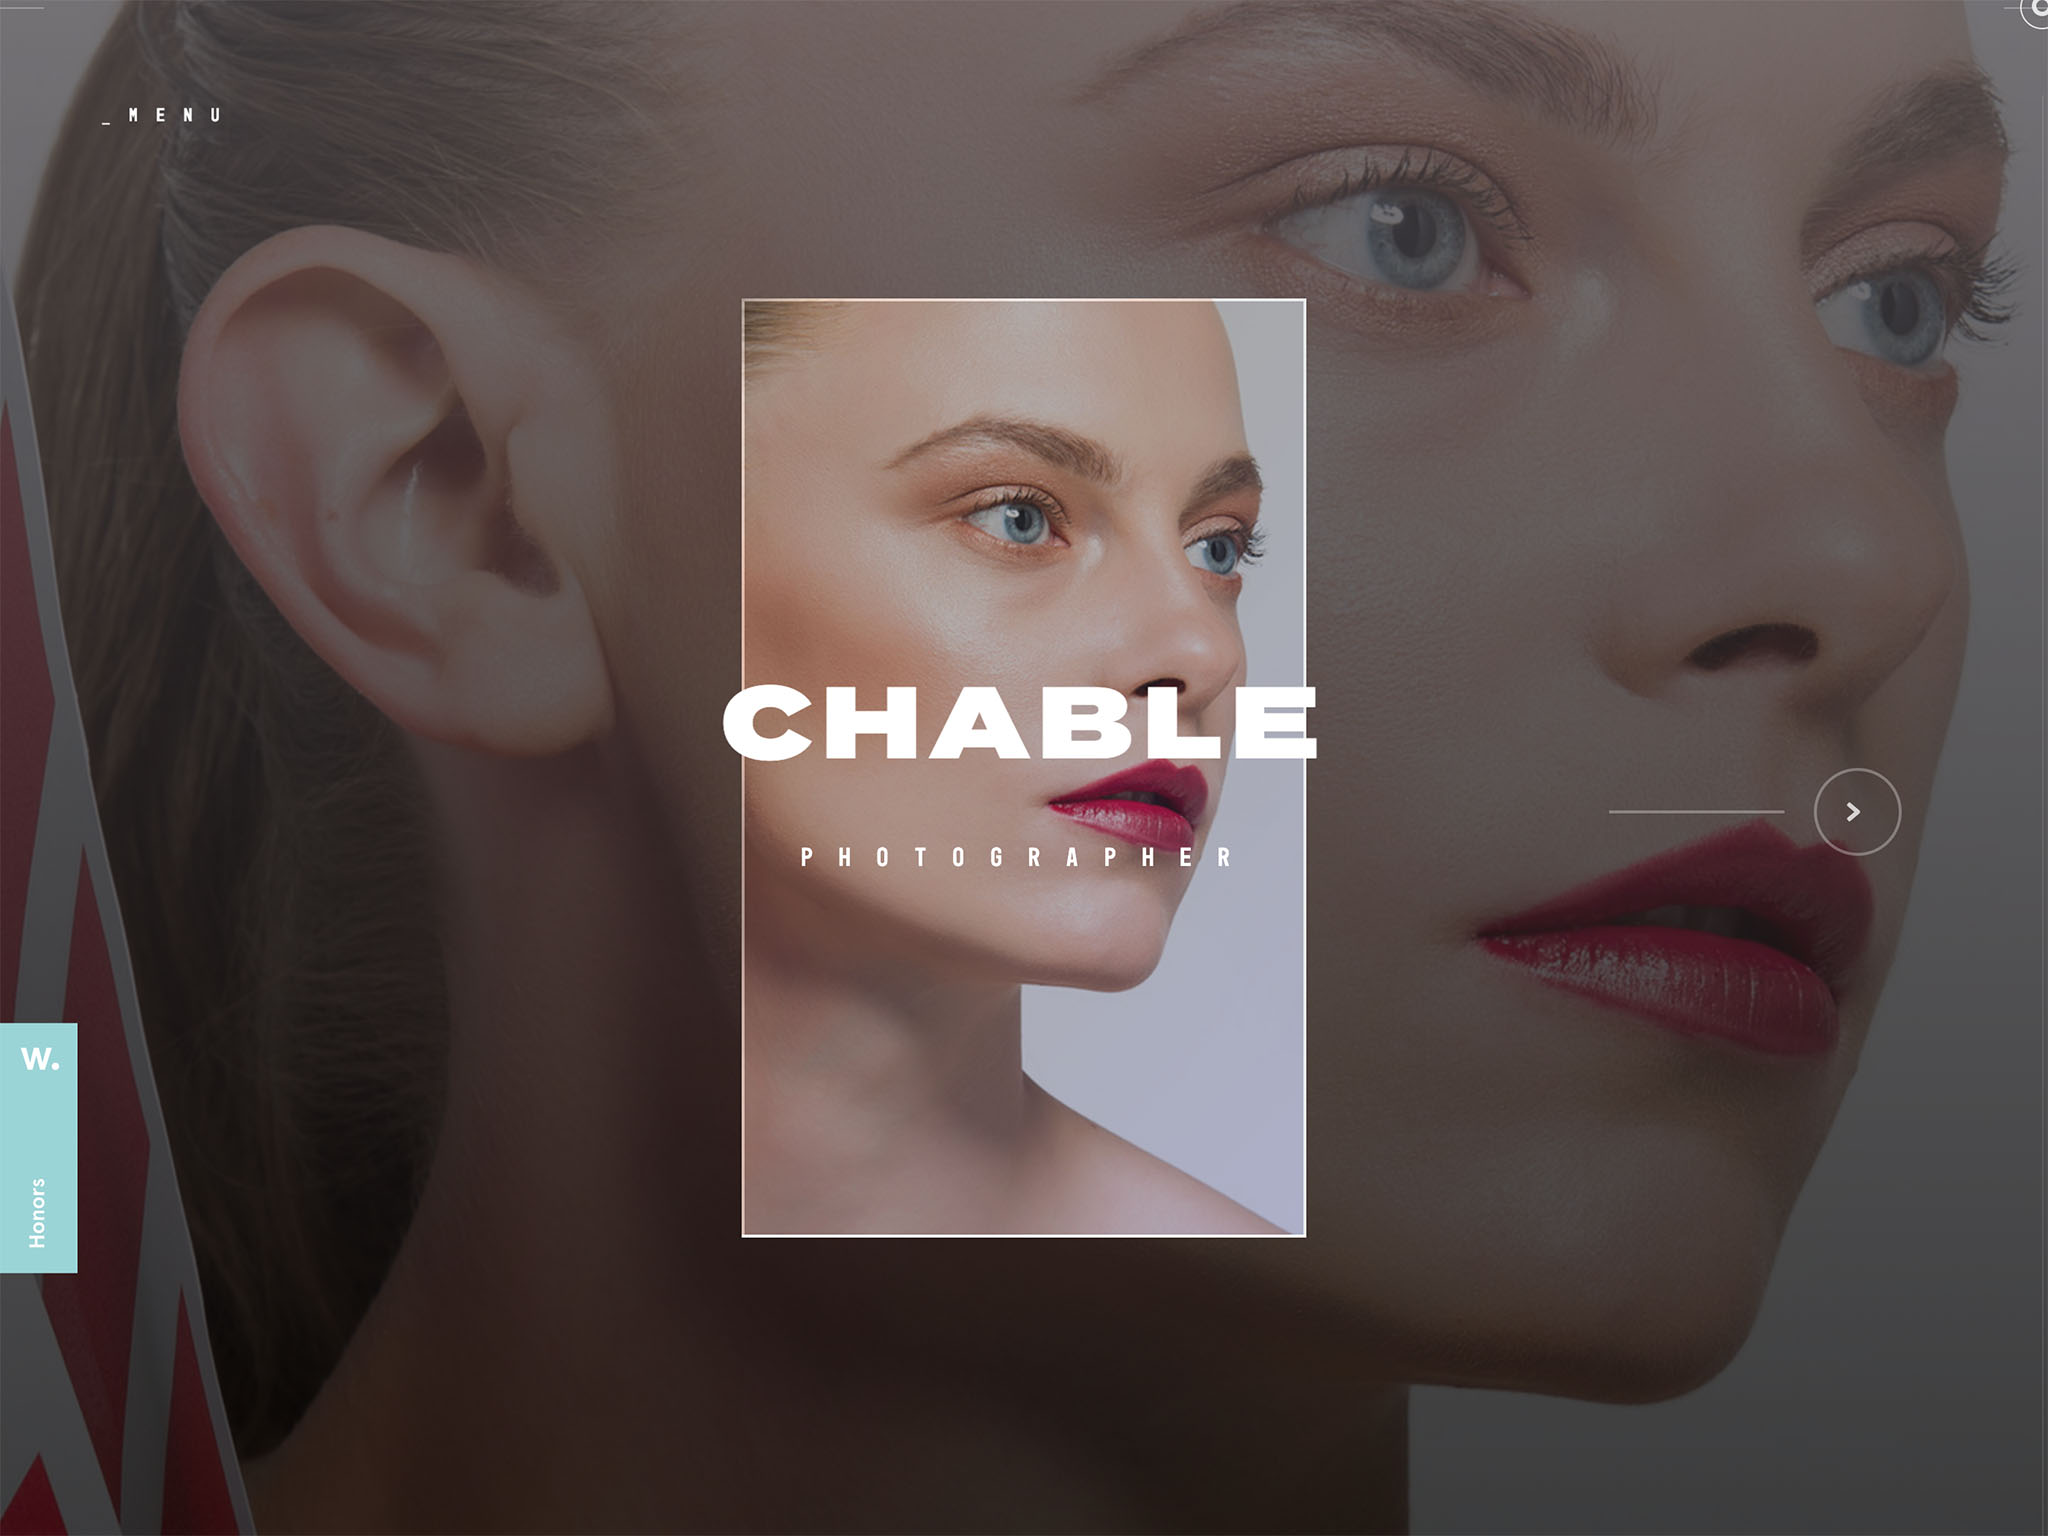 CHABLE | PHOTOGRAPHER